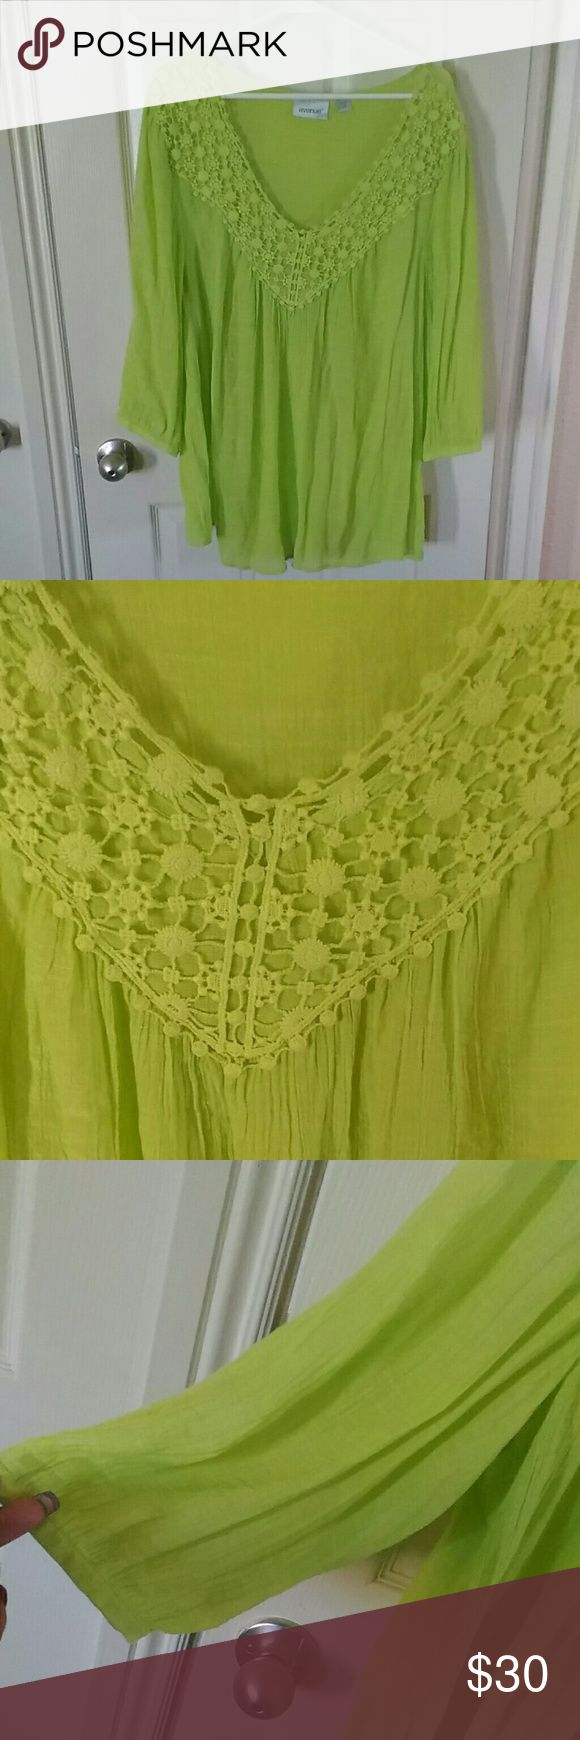 Avenue semi sheer top This is a beautiful lime green with crocheted neckline semi sheer gauze top Avenue Tops Tunics